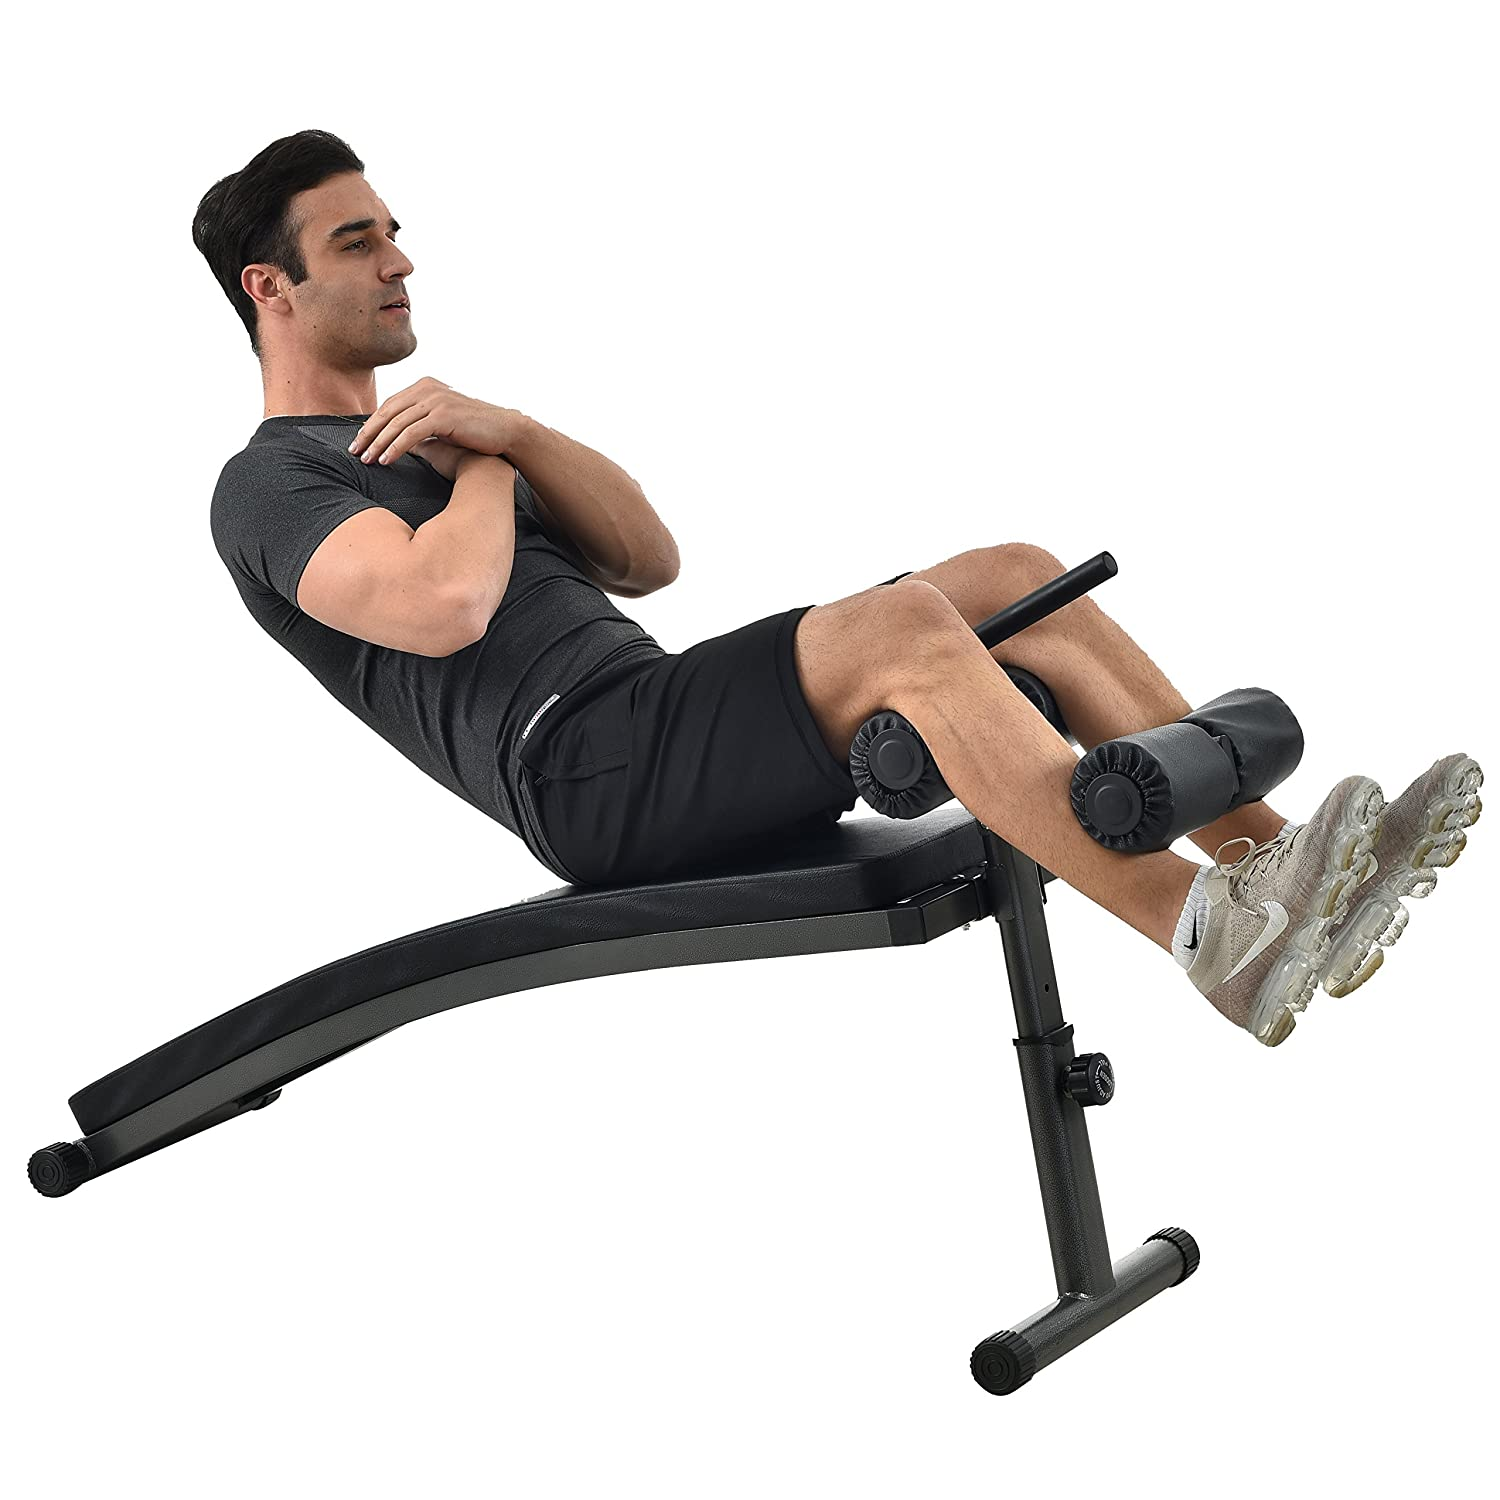 Finer Form Gym-Quality Sit Up Bench with Reverse Crunch Handle for Ab Exercises from